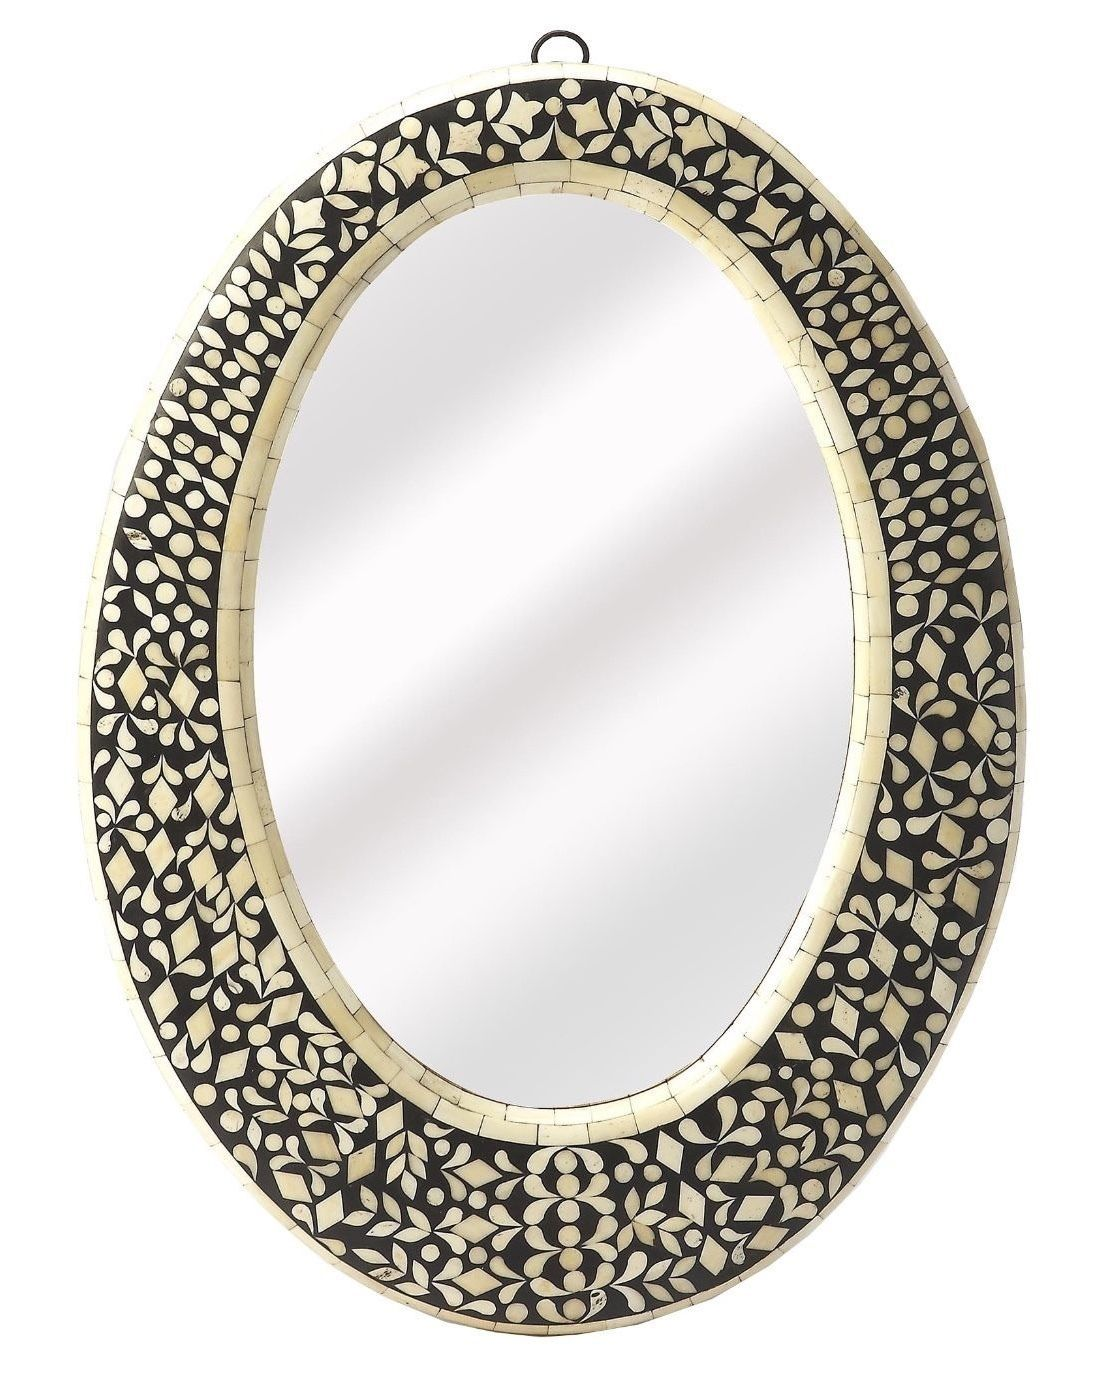 Anthropologie French Moroccan Bone Inlay OVAL Wall Mirror Vanity Foyer